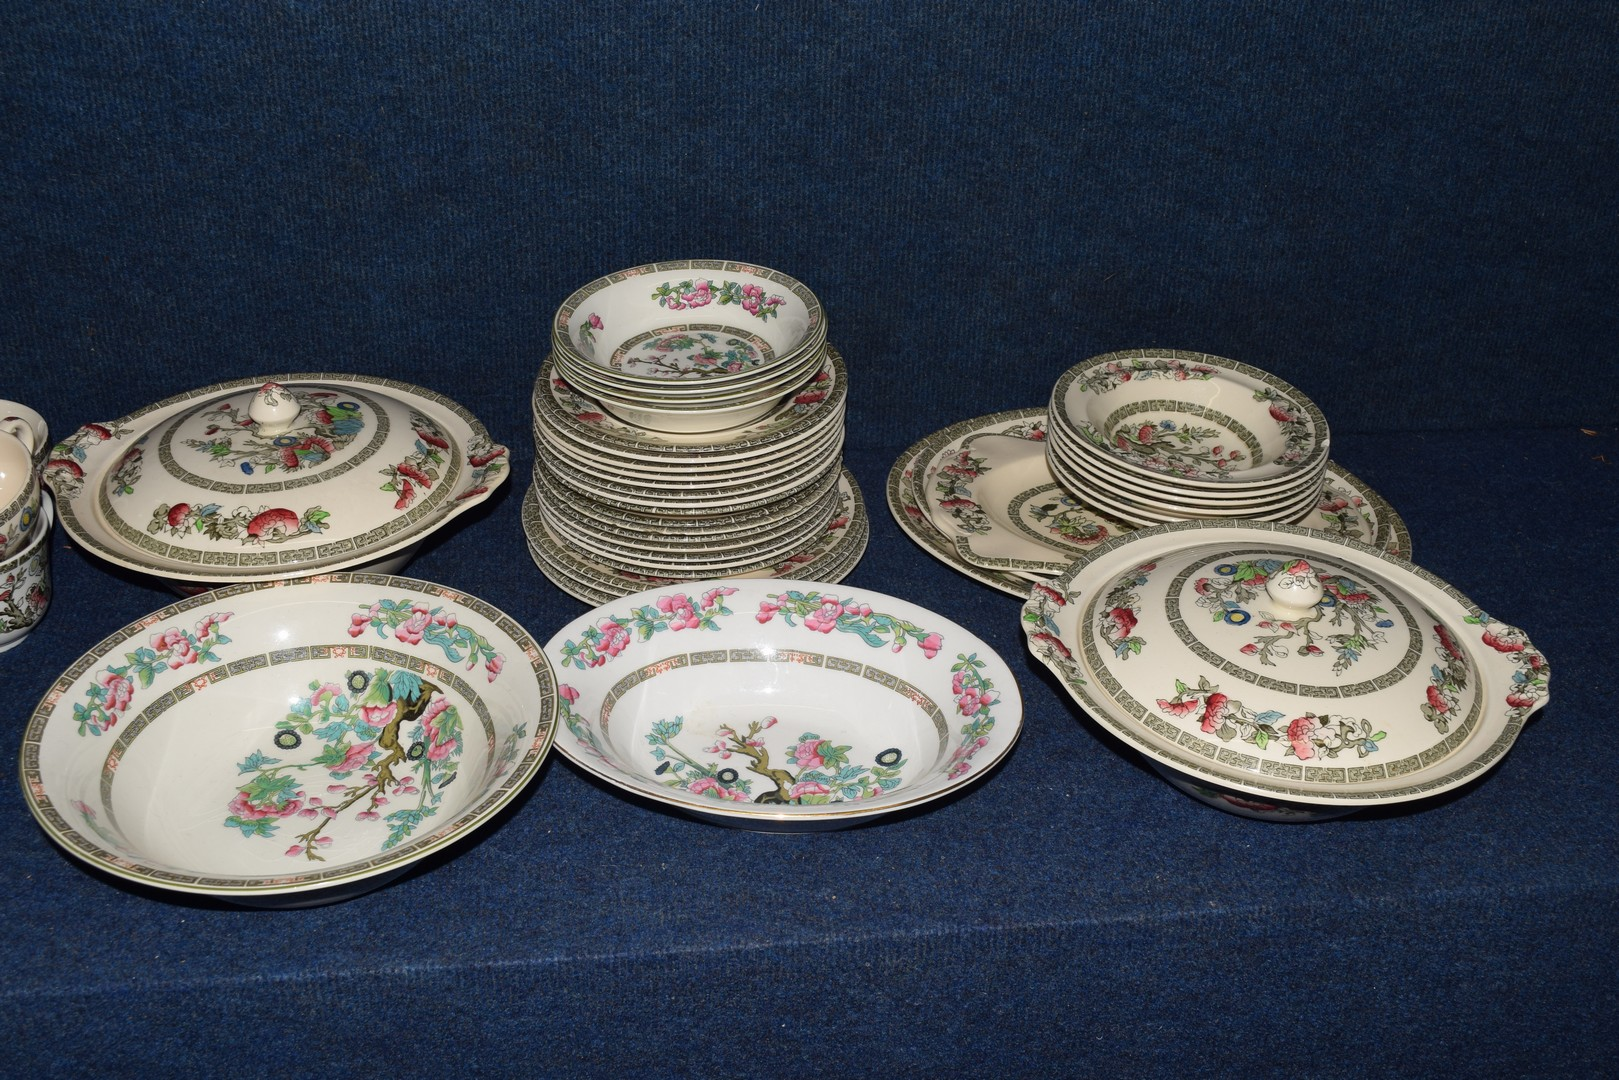 Extensive quantity of Johnson Bros tea and dinner wares - Image 5 of 5